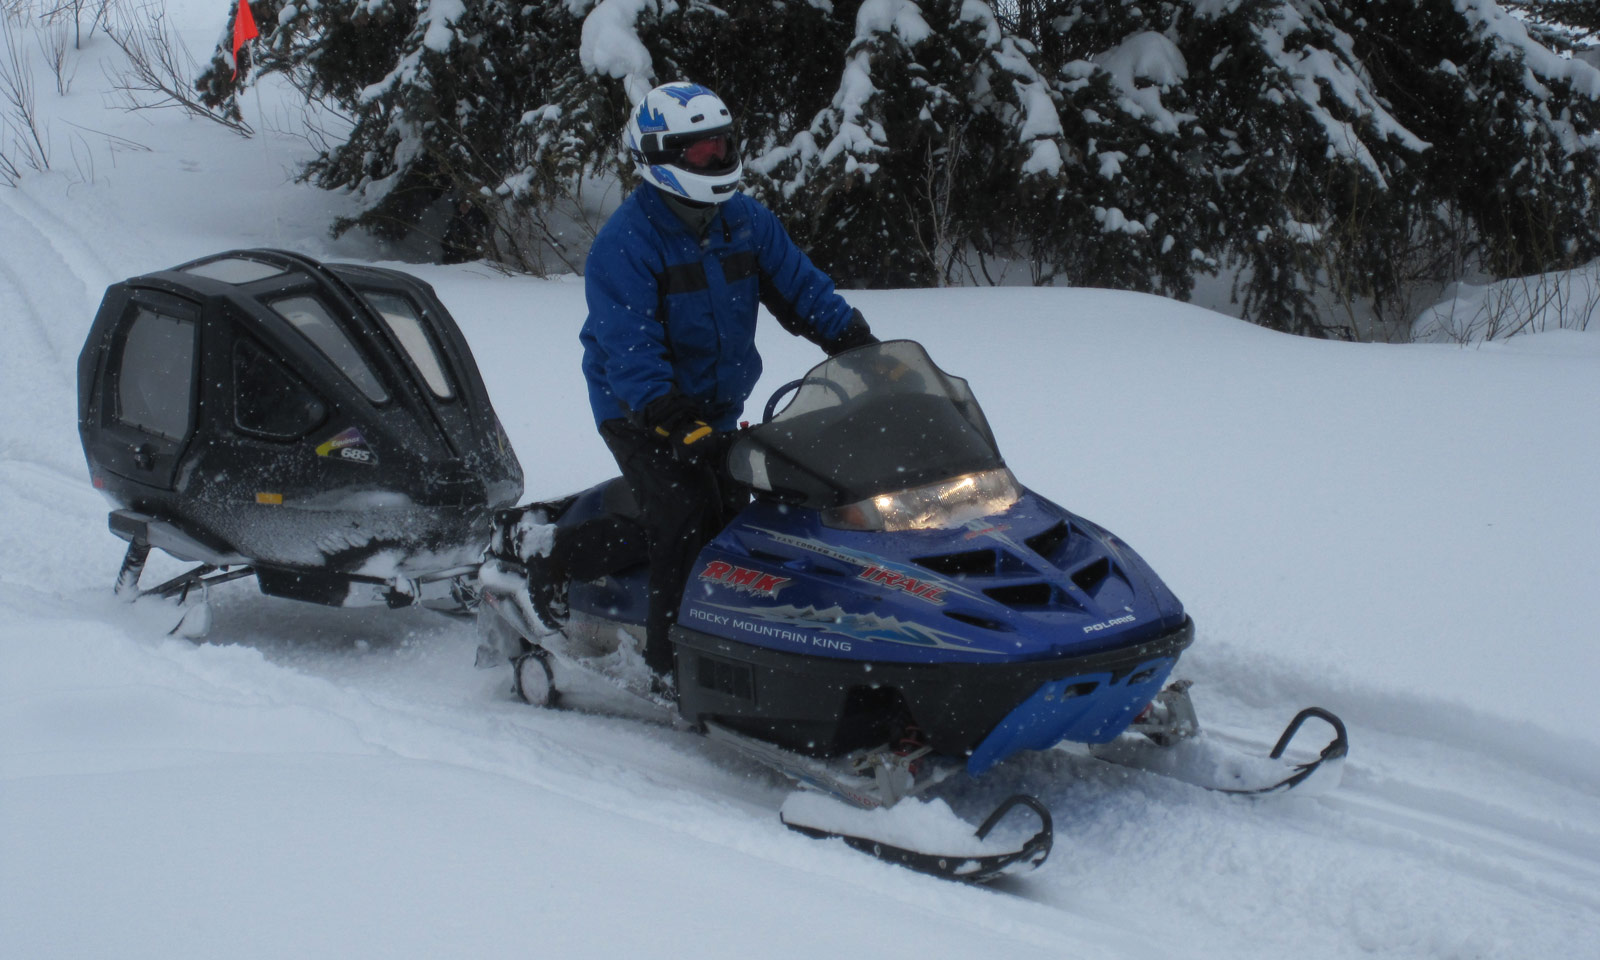 Towing Your Snowmobile Safe Riders Snowmobile Safety Awareness